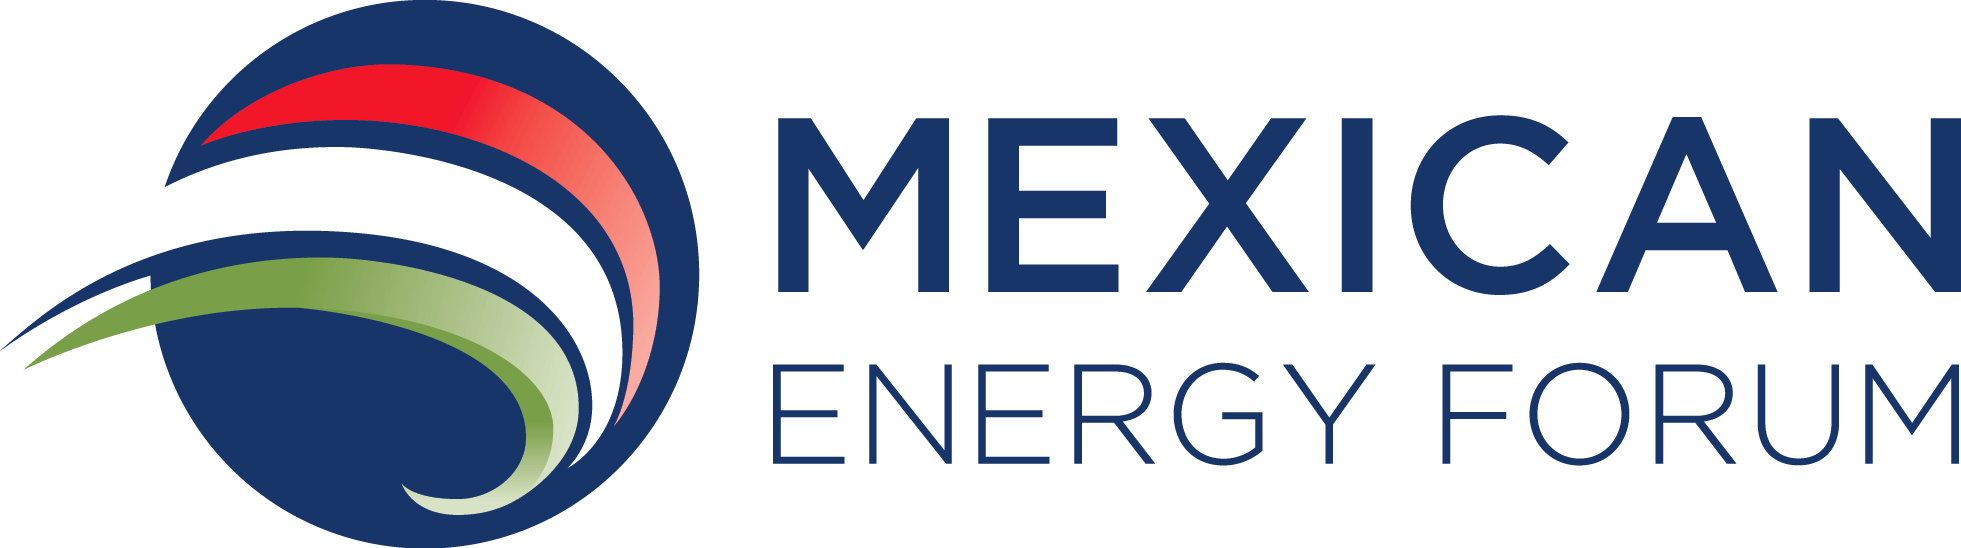 Mexican Energy Forum (Español)